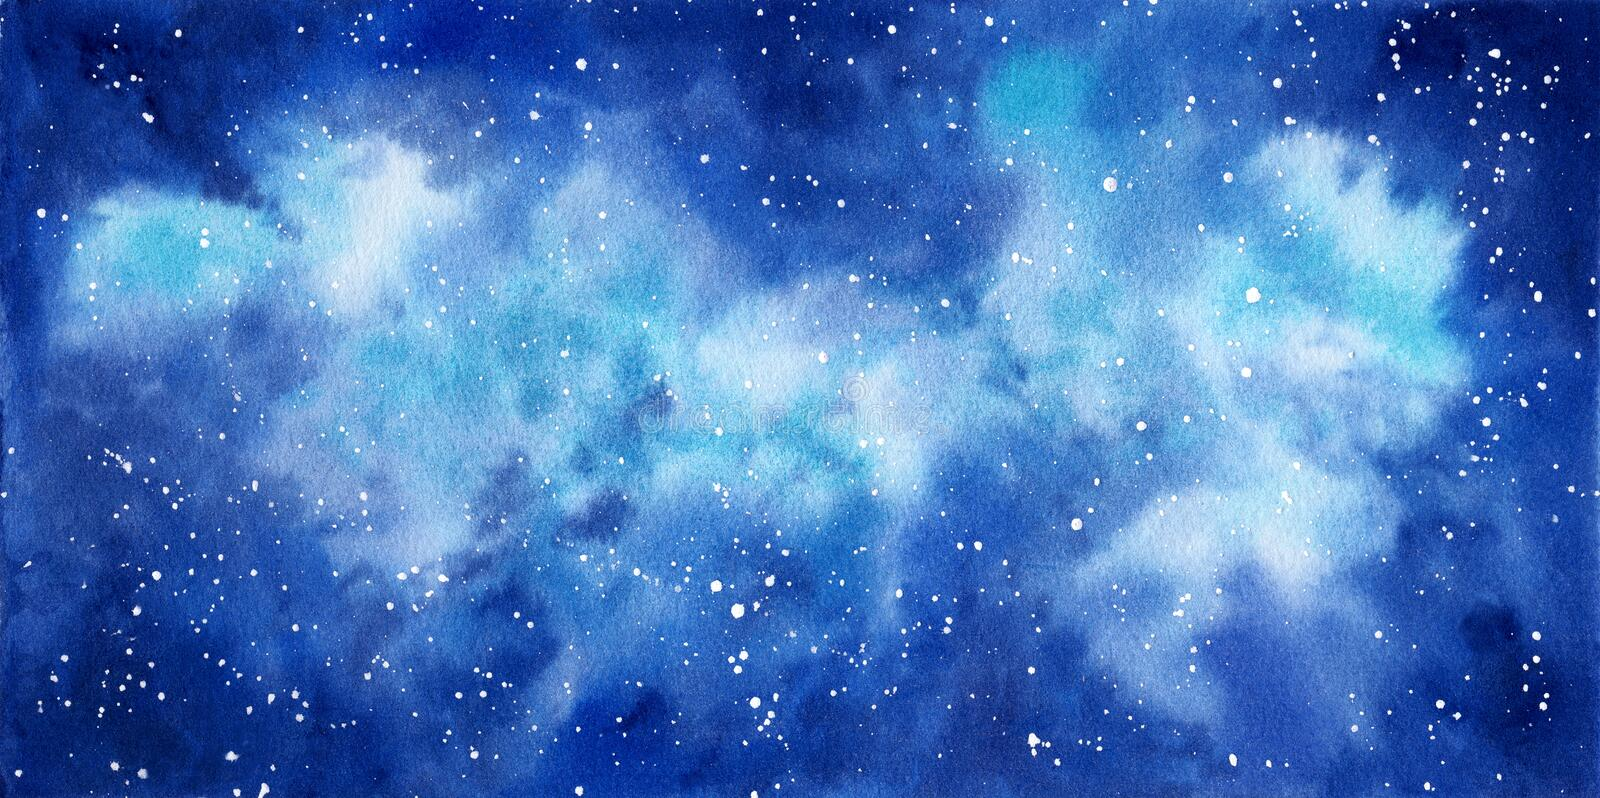 Space watercolor hand painted background. Abstract galaxy painting. vector illustration